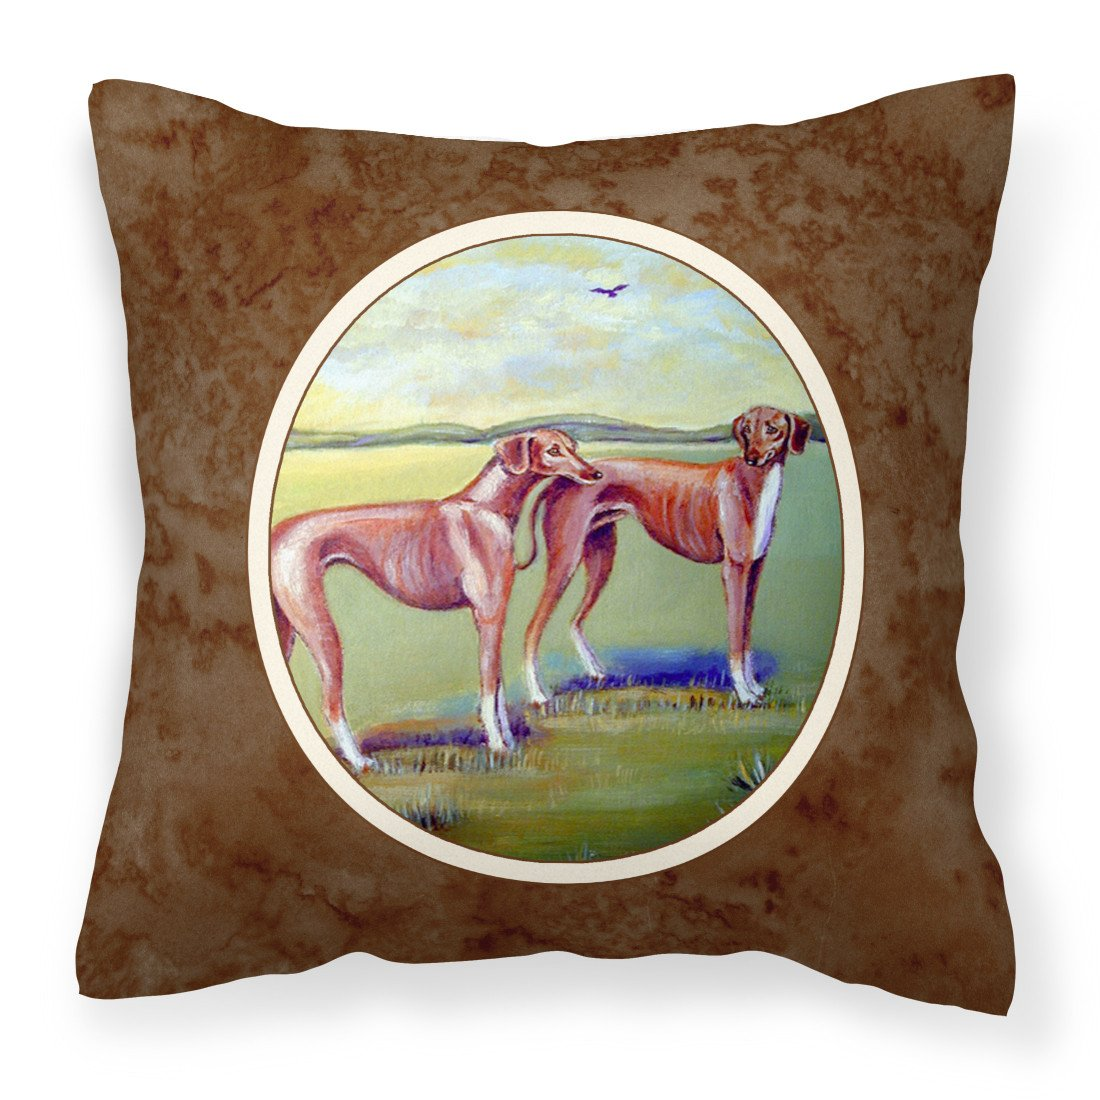 Buy this Azawakh Hound Fabric Decorative Pillow 7001PW1414